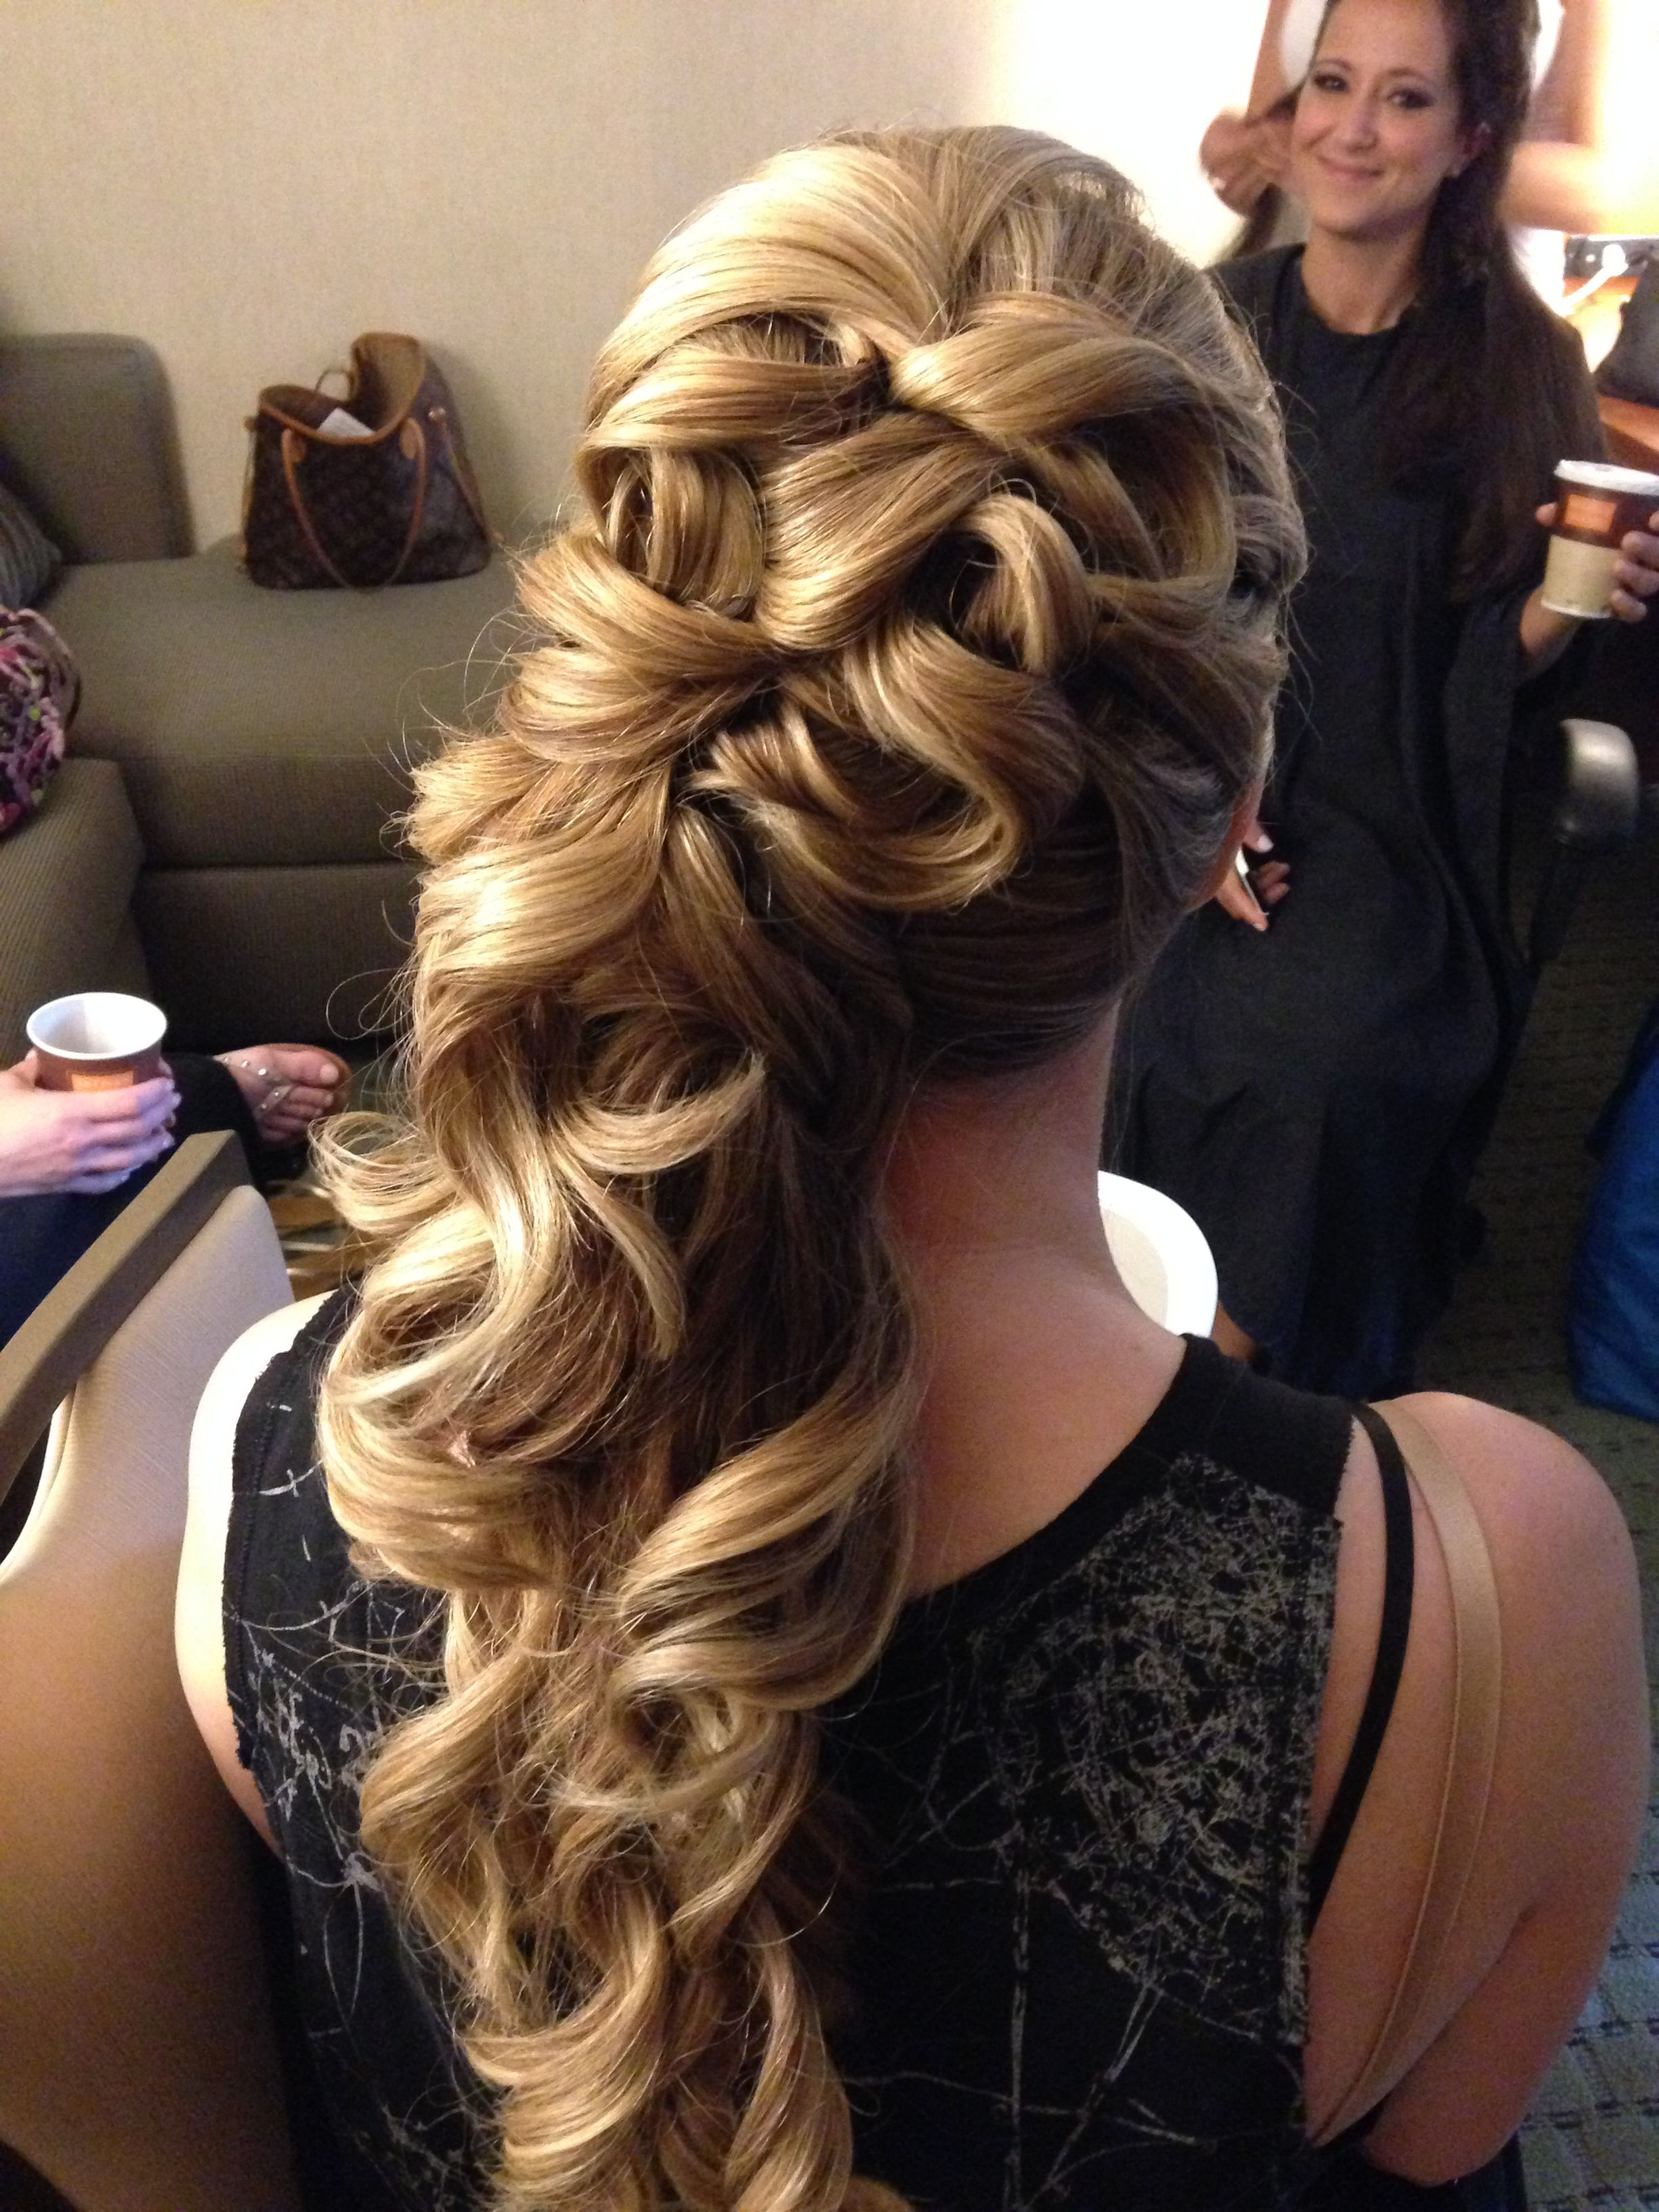 All up thick hair side pony tail blonde wedding hair by Jo @ jostyles479@aol.com